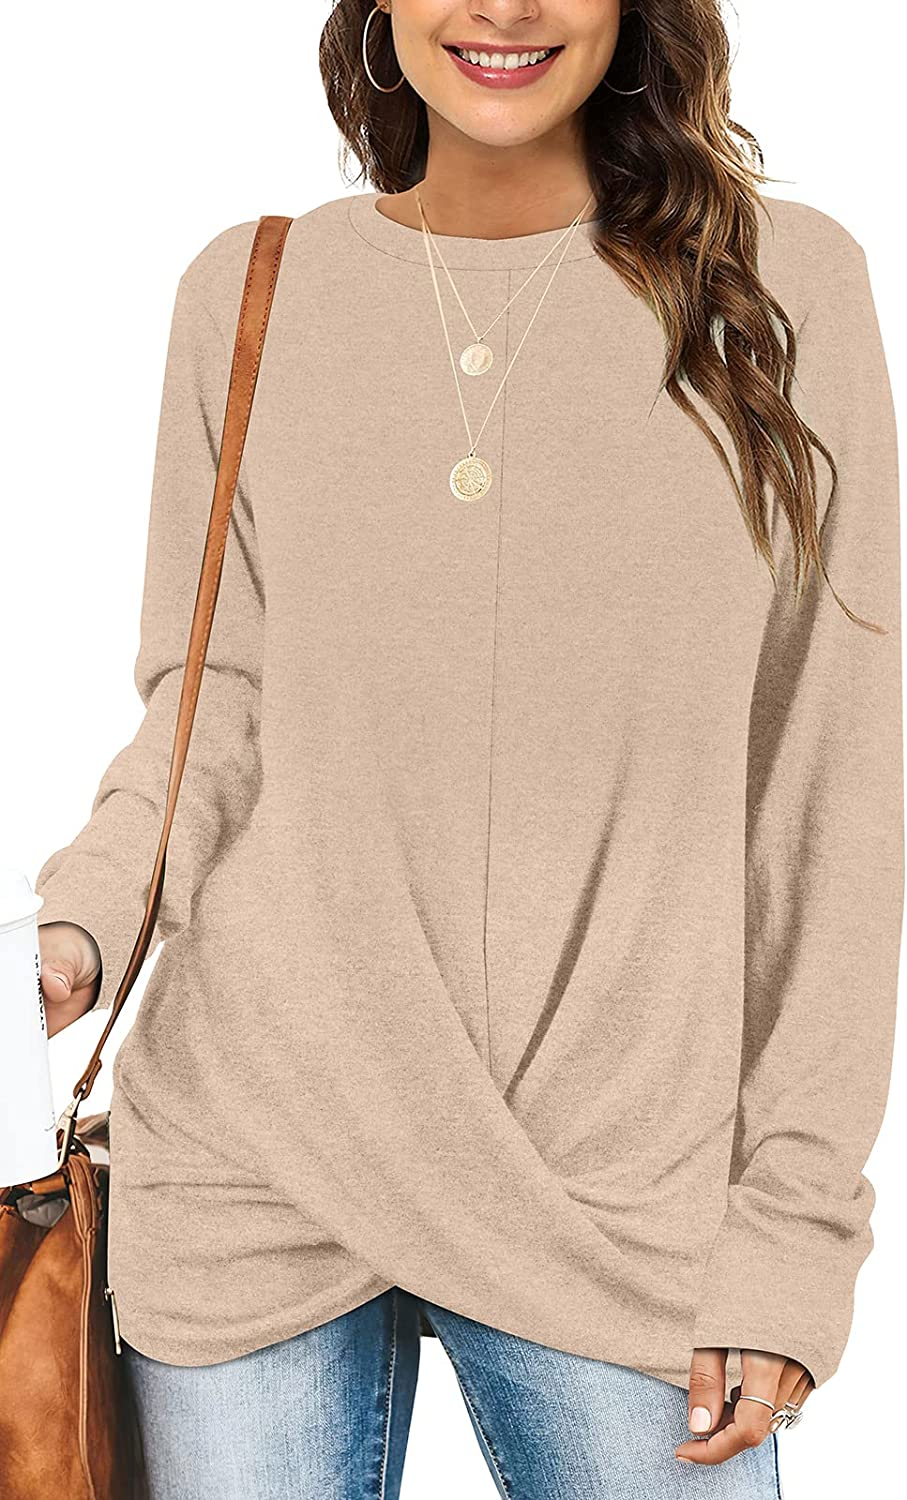 Tunic Tops For Leggings For Women Twist Front Long Sleeve Crew Neck Shirts